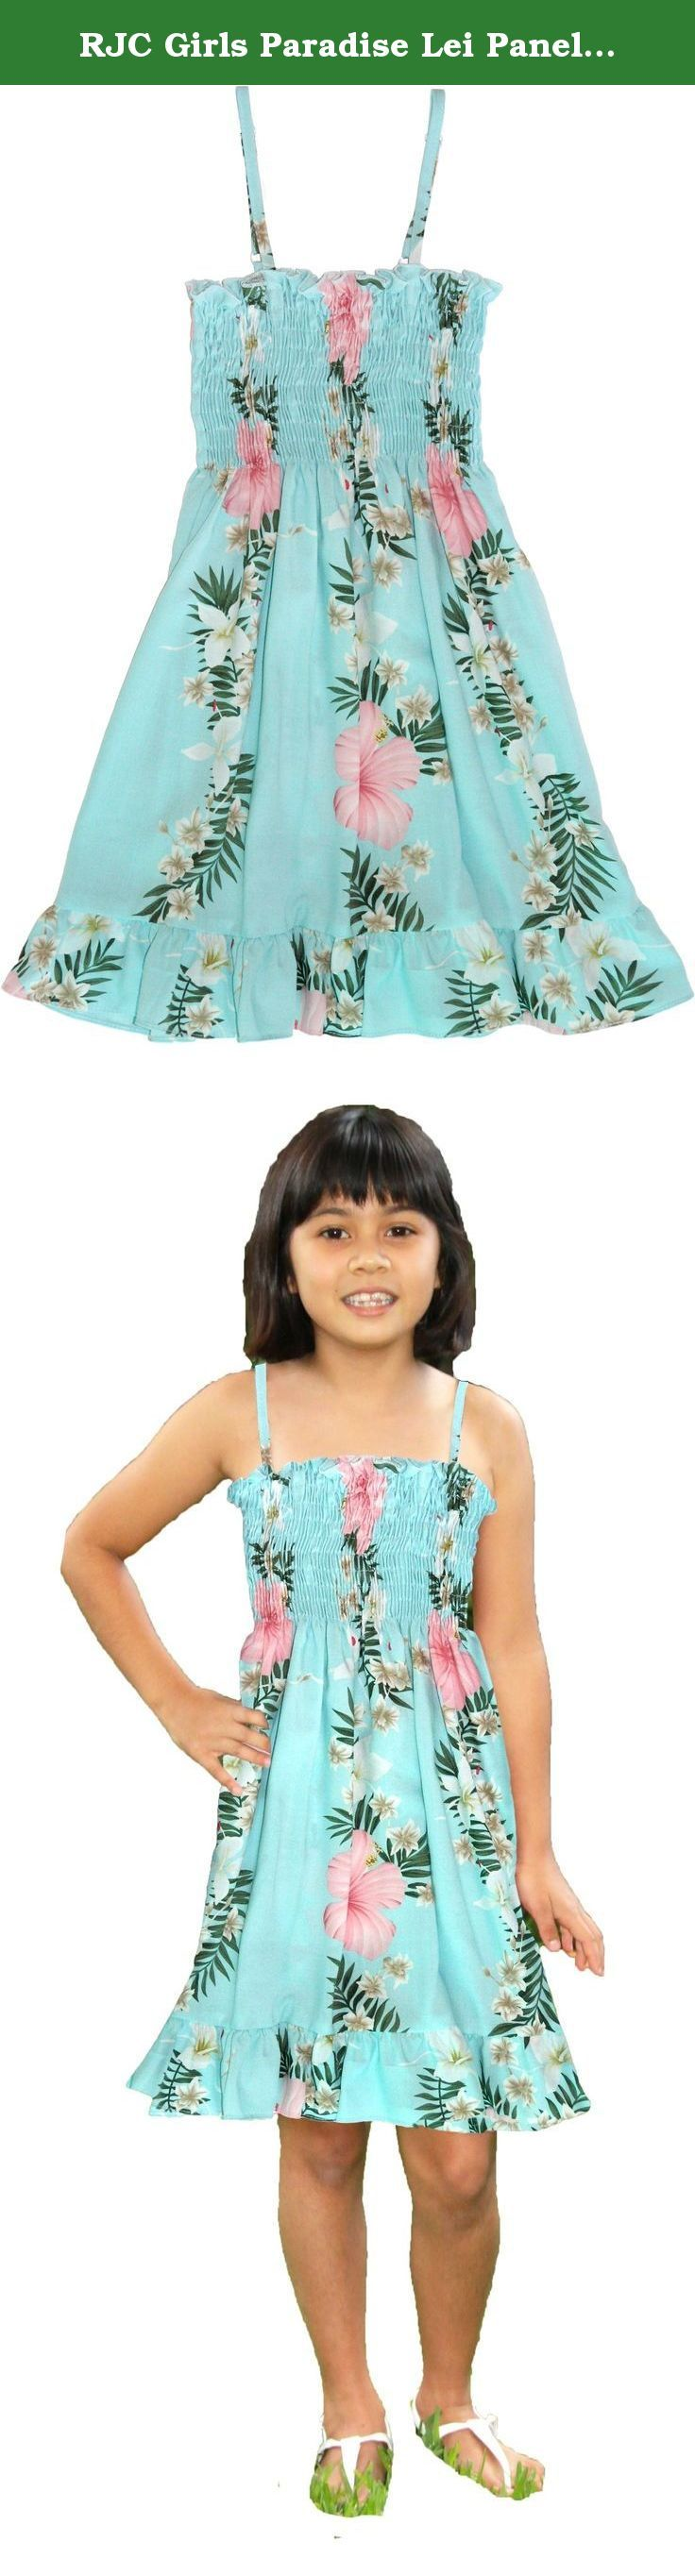 "RJC Girls Paradise Lei Panel Elastic Tube Top Ruffle Sundress Aqua 3. SIZING INFO // RJC GIRLS // STYLE 155 // there are approx. measurements of the dresses // ELASTIC TUBE TOP (without expansion to maximum expansion) - (size 2) 14""-24"" 